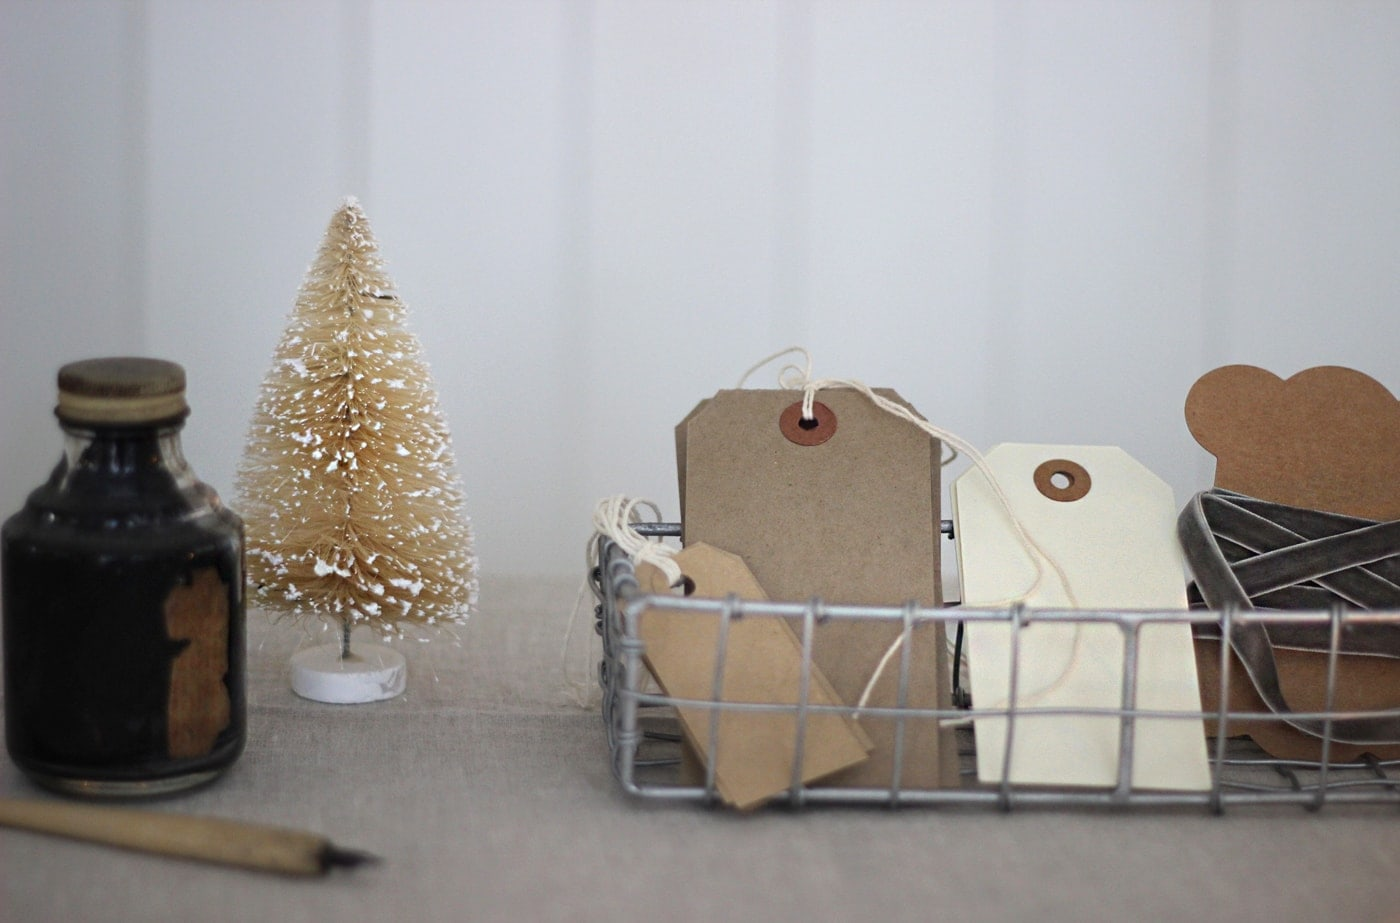 12 styled days of Christmas series with West Elm | Christmas crafts | growing spaces